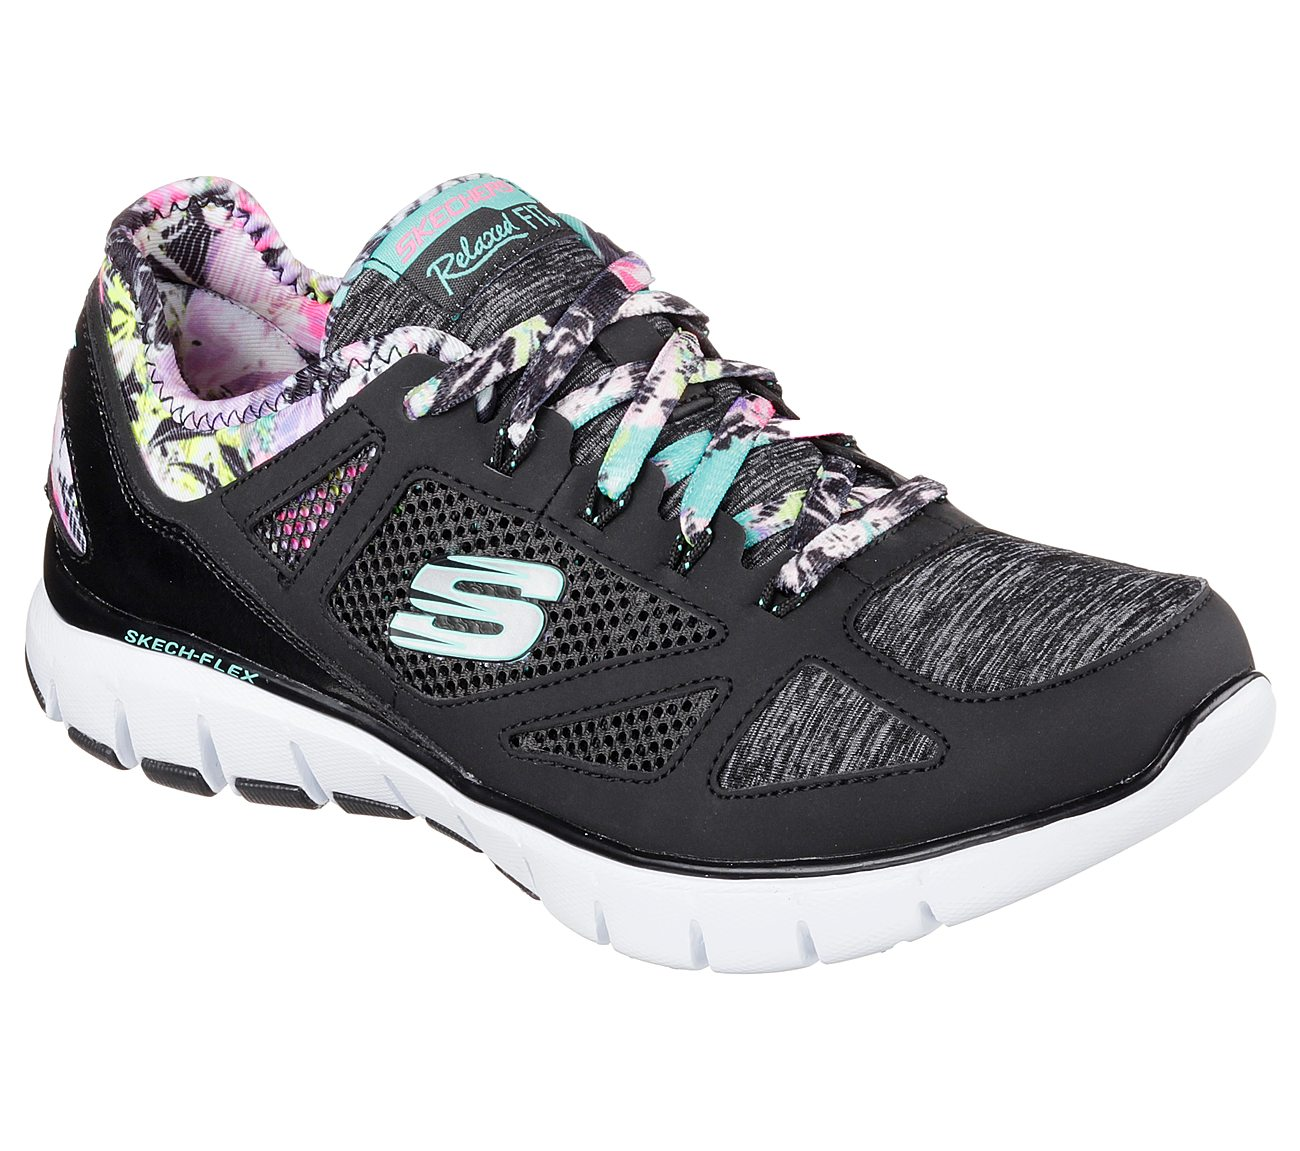 Tropical Vibe SKECHERS Relaxed Fit Shoes